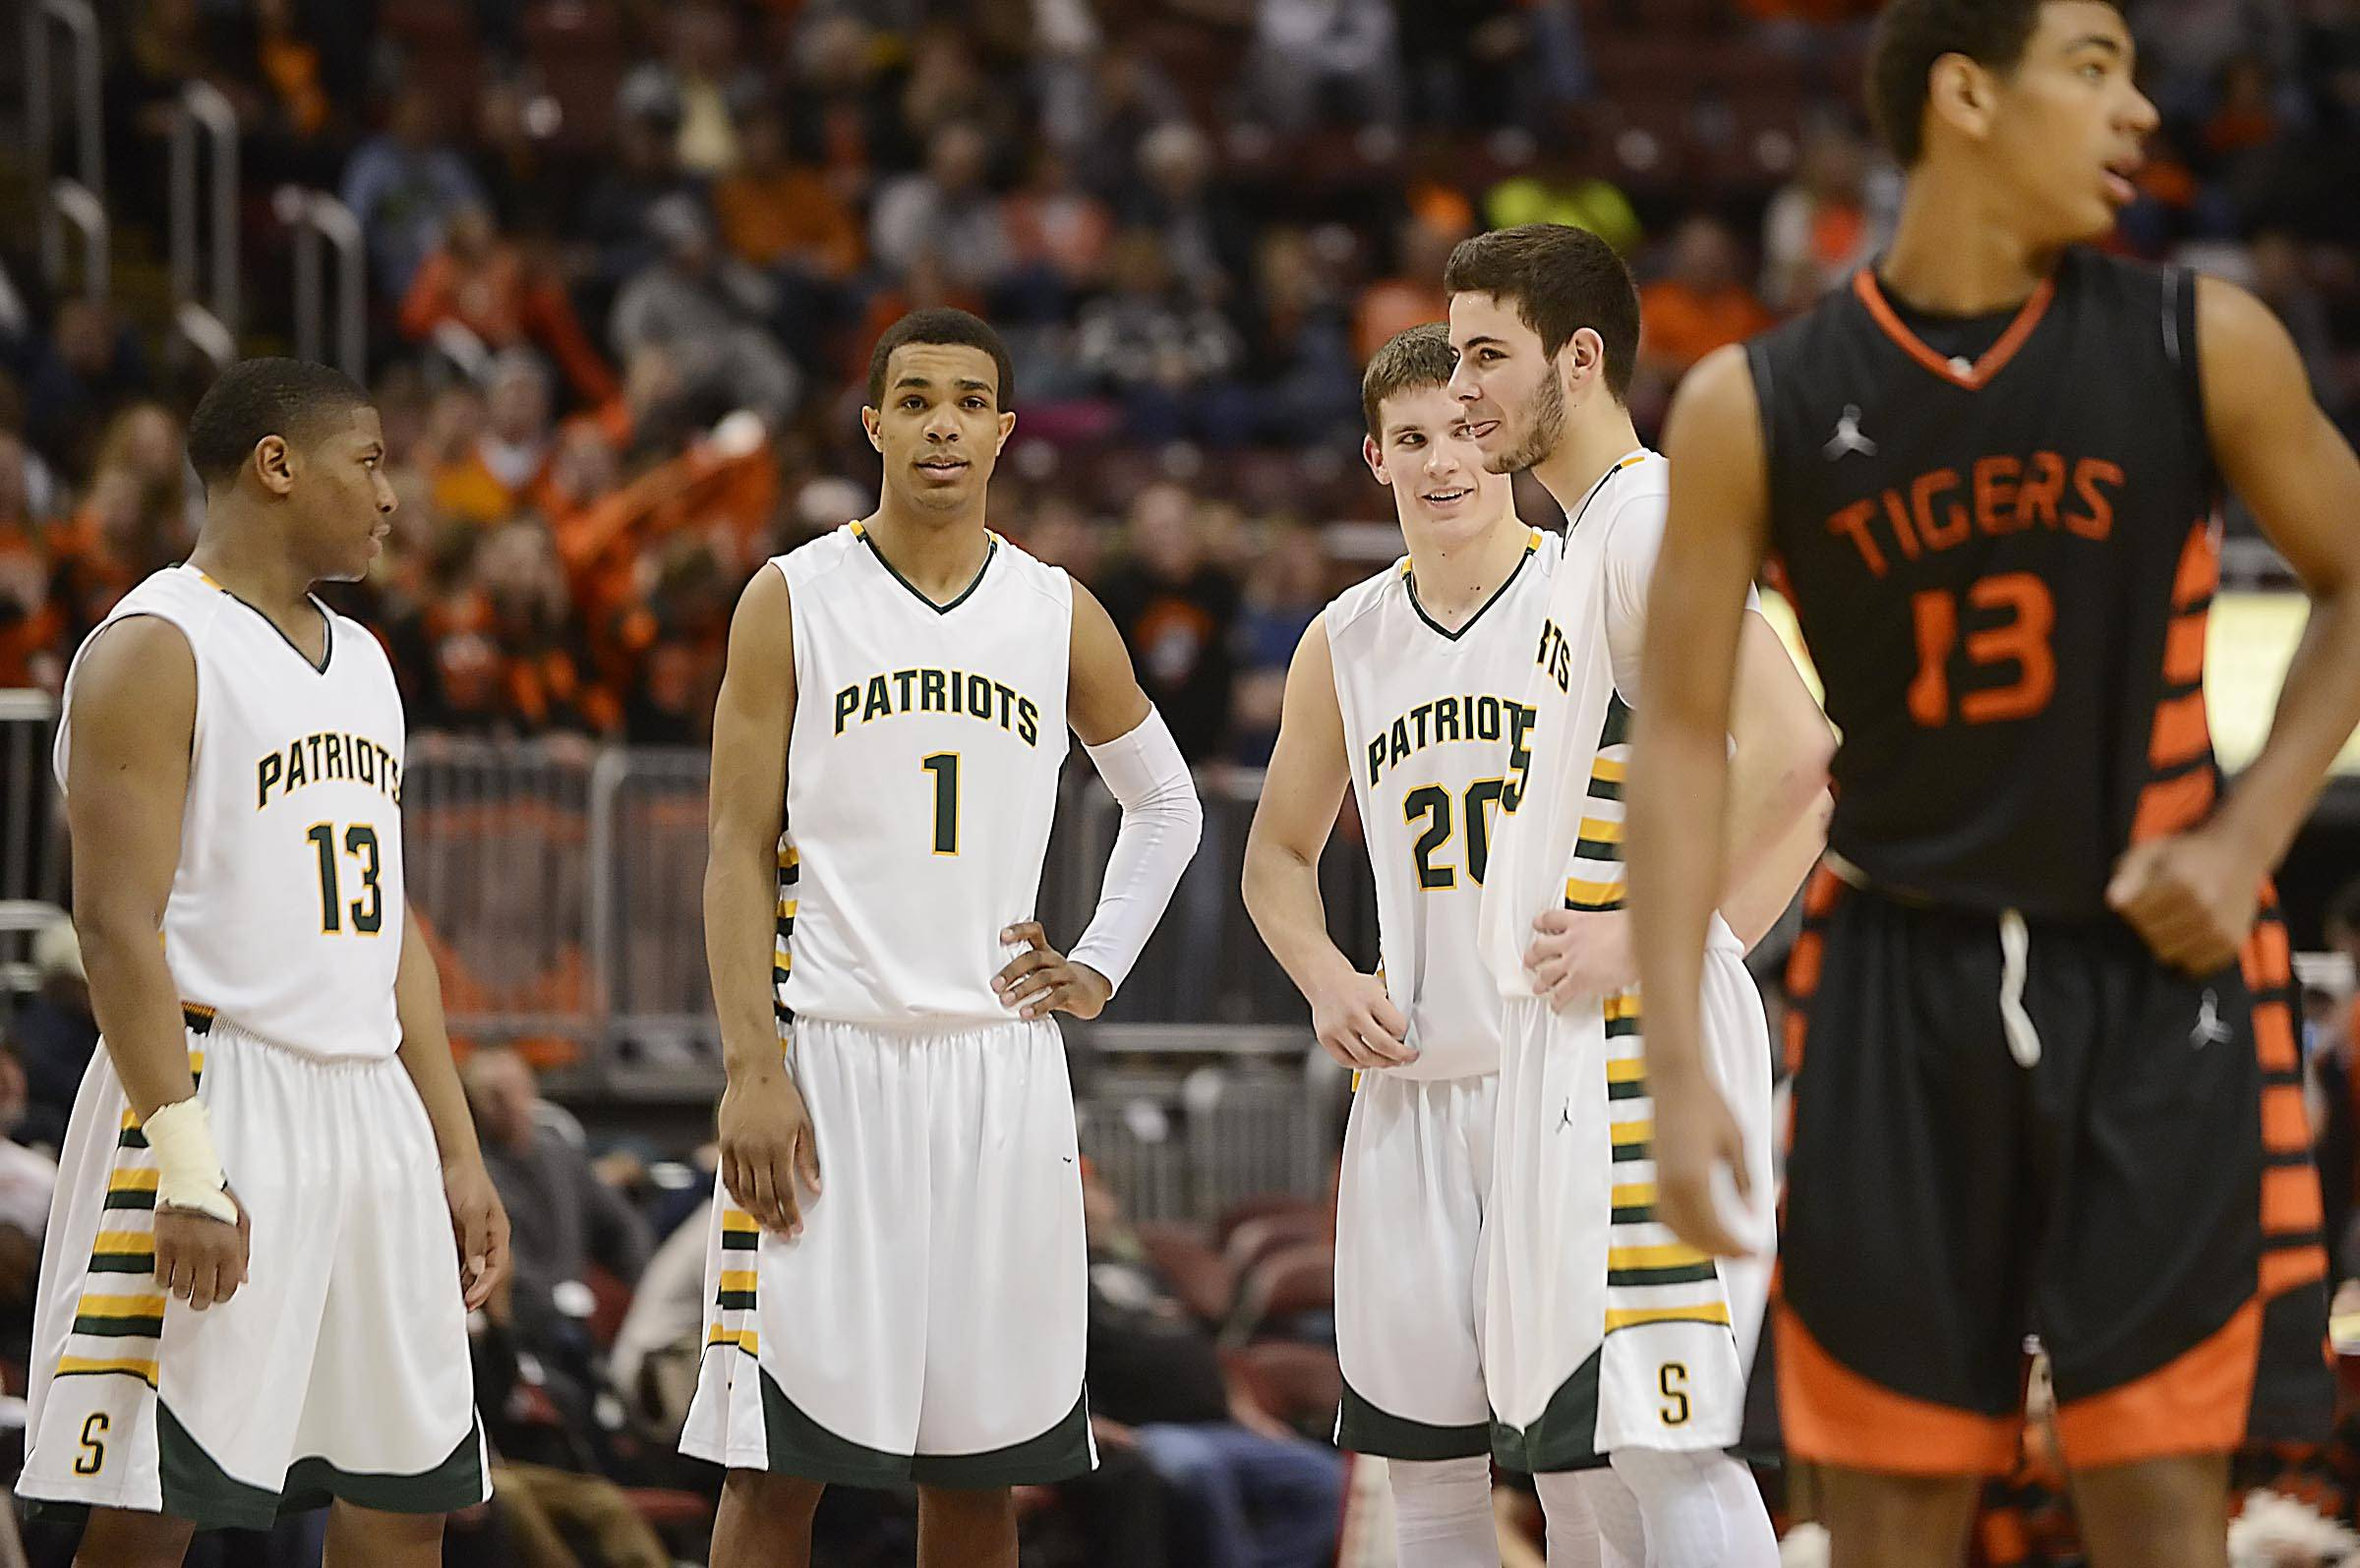 Stevenson's Matthew Johnson, Connor Cashaw, Matt Morrissey, and Parker Nichols, begin to relax in the final minutes of their win over Edwardsville in the Class 4A state third place game at Carver Arena in Peoria Saturday.